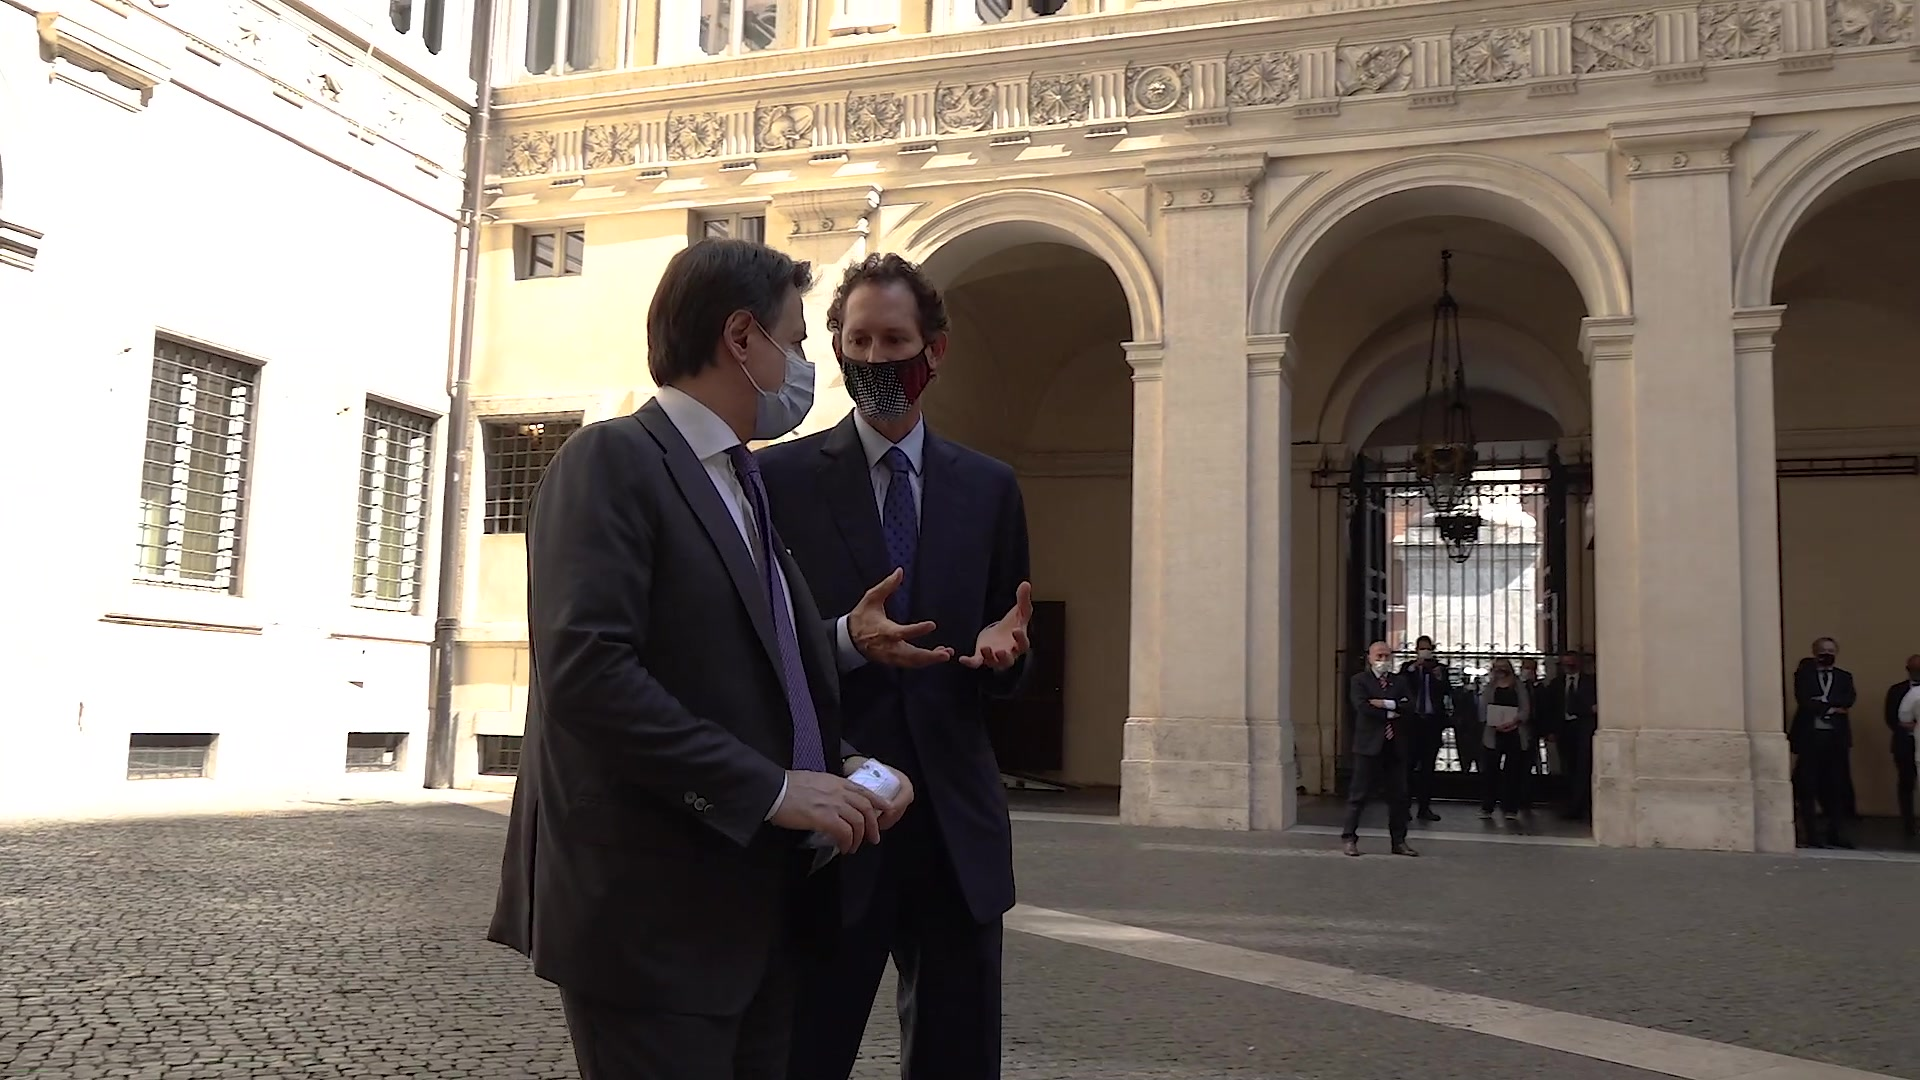 Presentation of the New Fiat 500 to the Italian Prime Minister, Giuseppe Conte